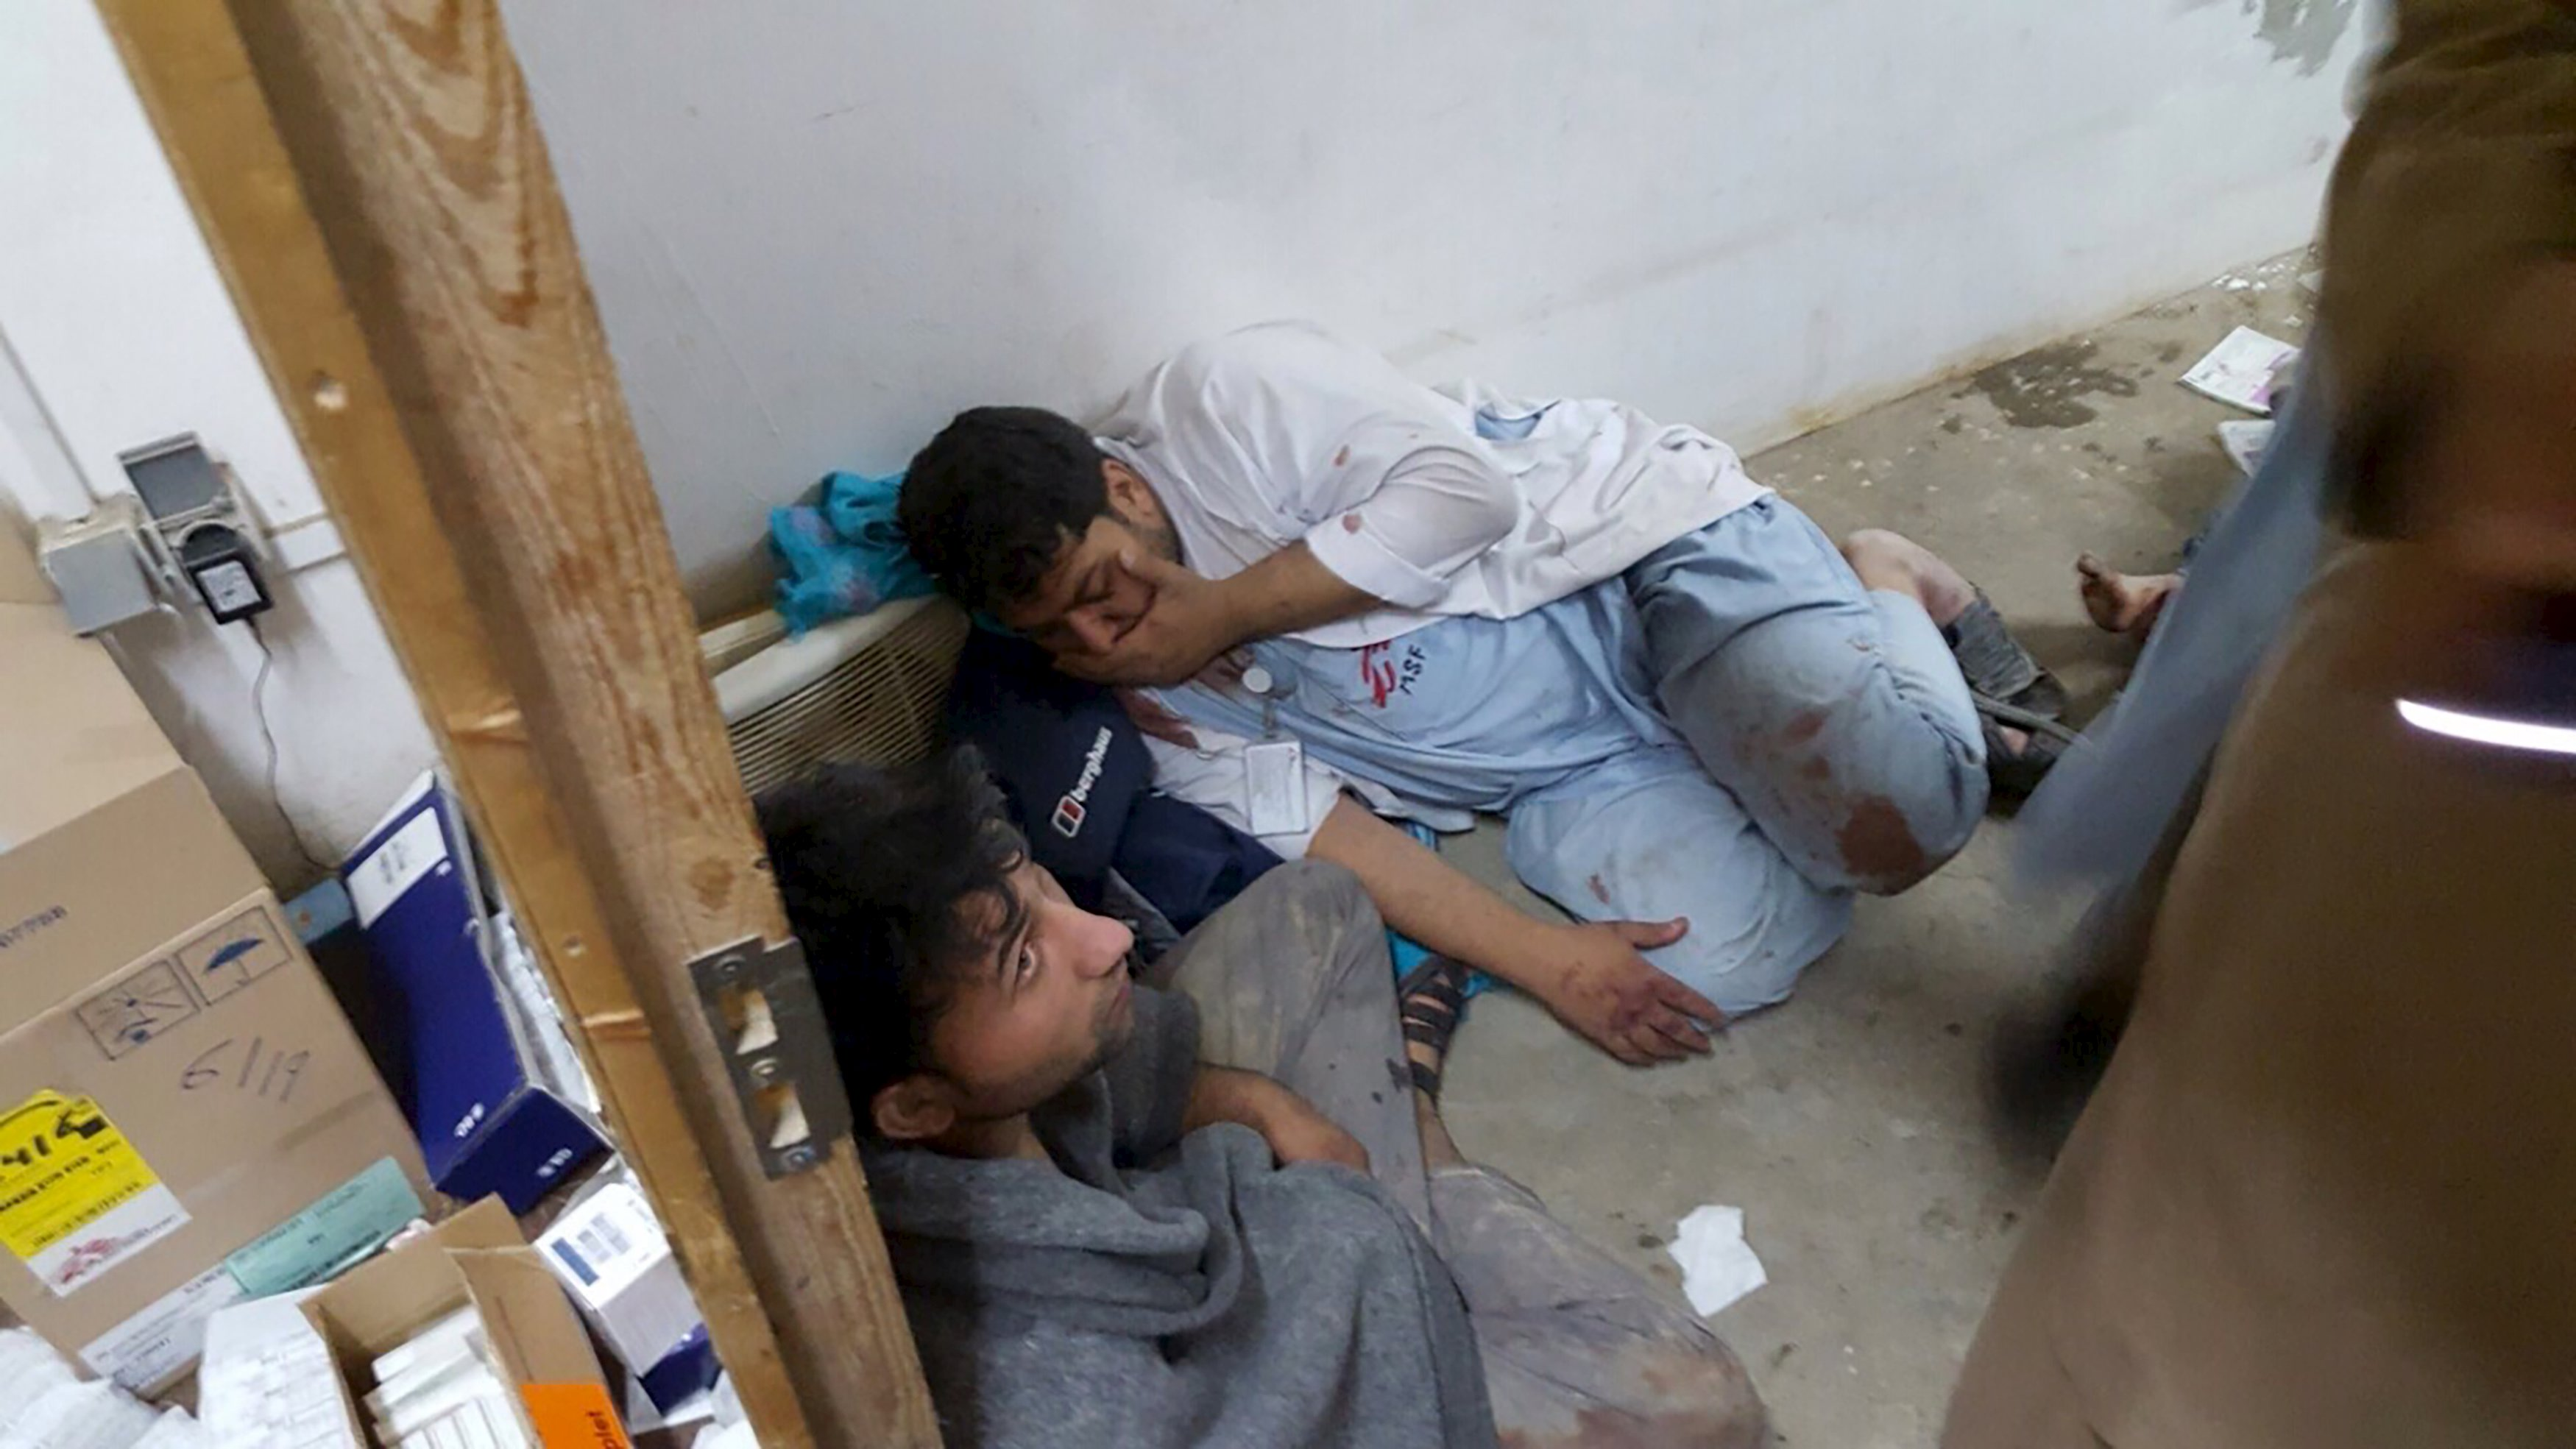 Afghan staff reacting inside a Medicins Sans Frontieres Hospital after an air strike in the city of Kunduz, on Saturday.  The US military acknowledged it may have bombed a hospital run by the medical aid group. Photo: Reuters